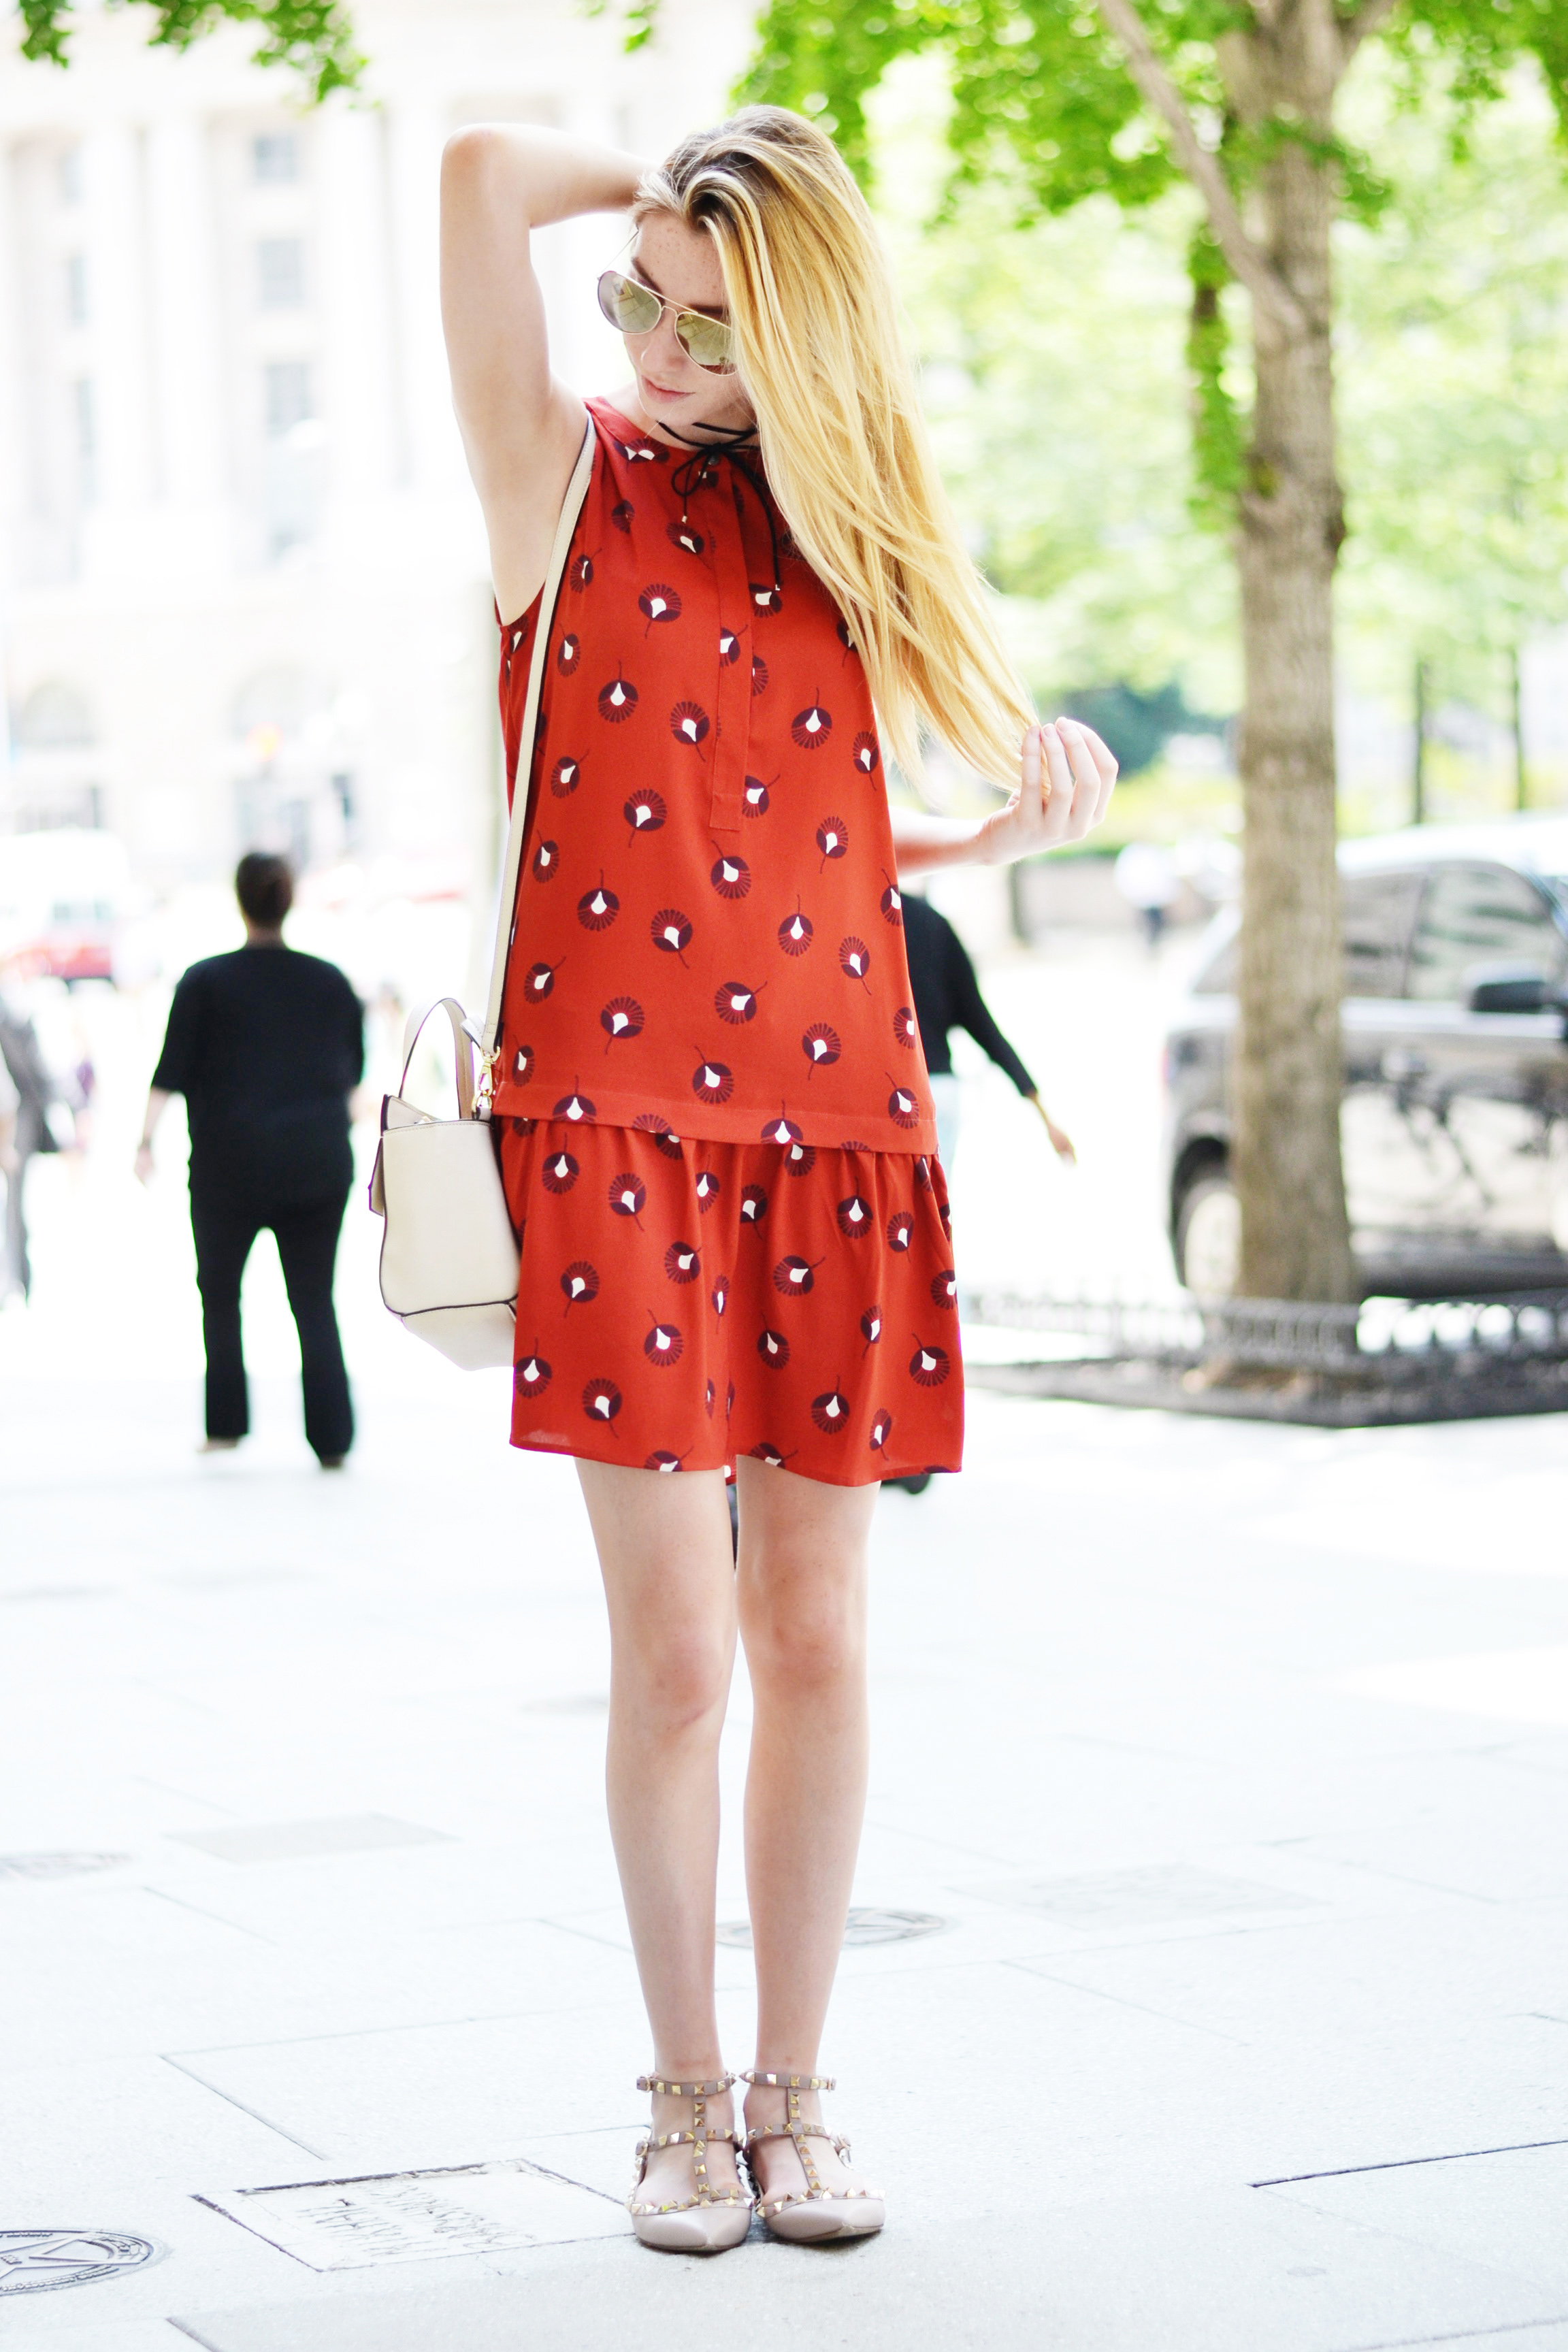 Blogger Drop Waist Dress (via Chic Now)